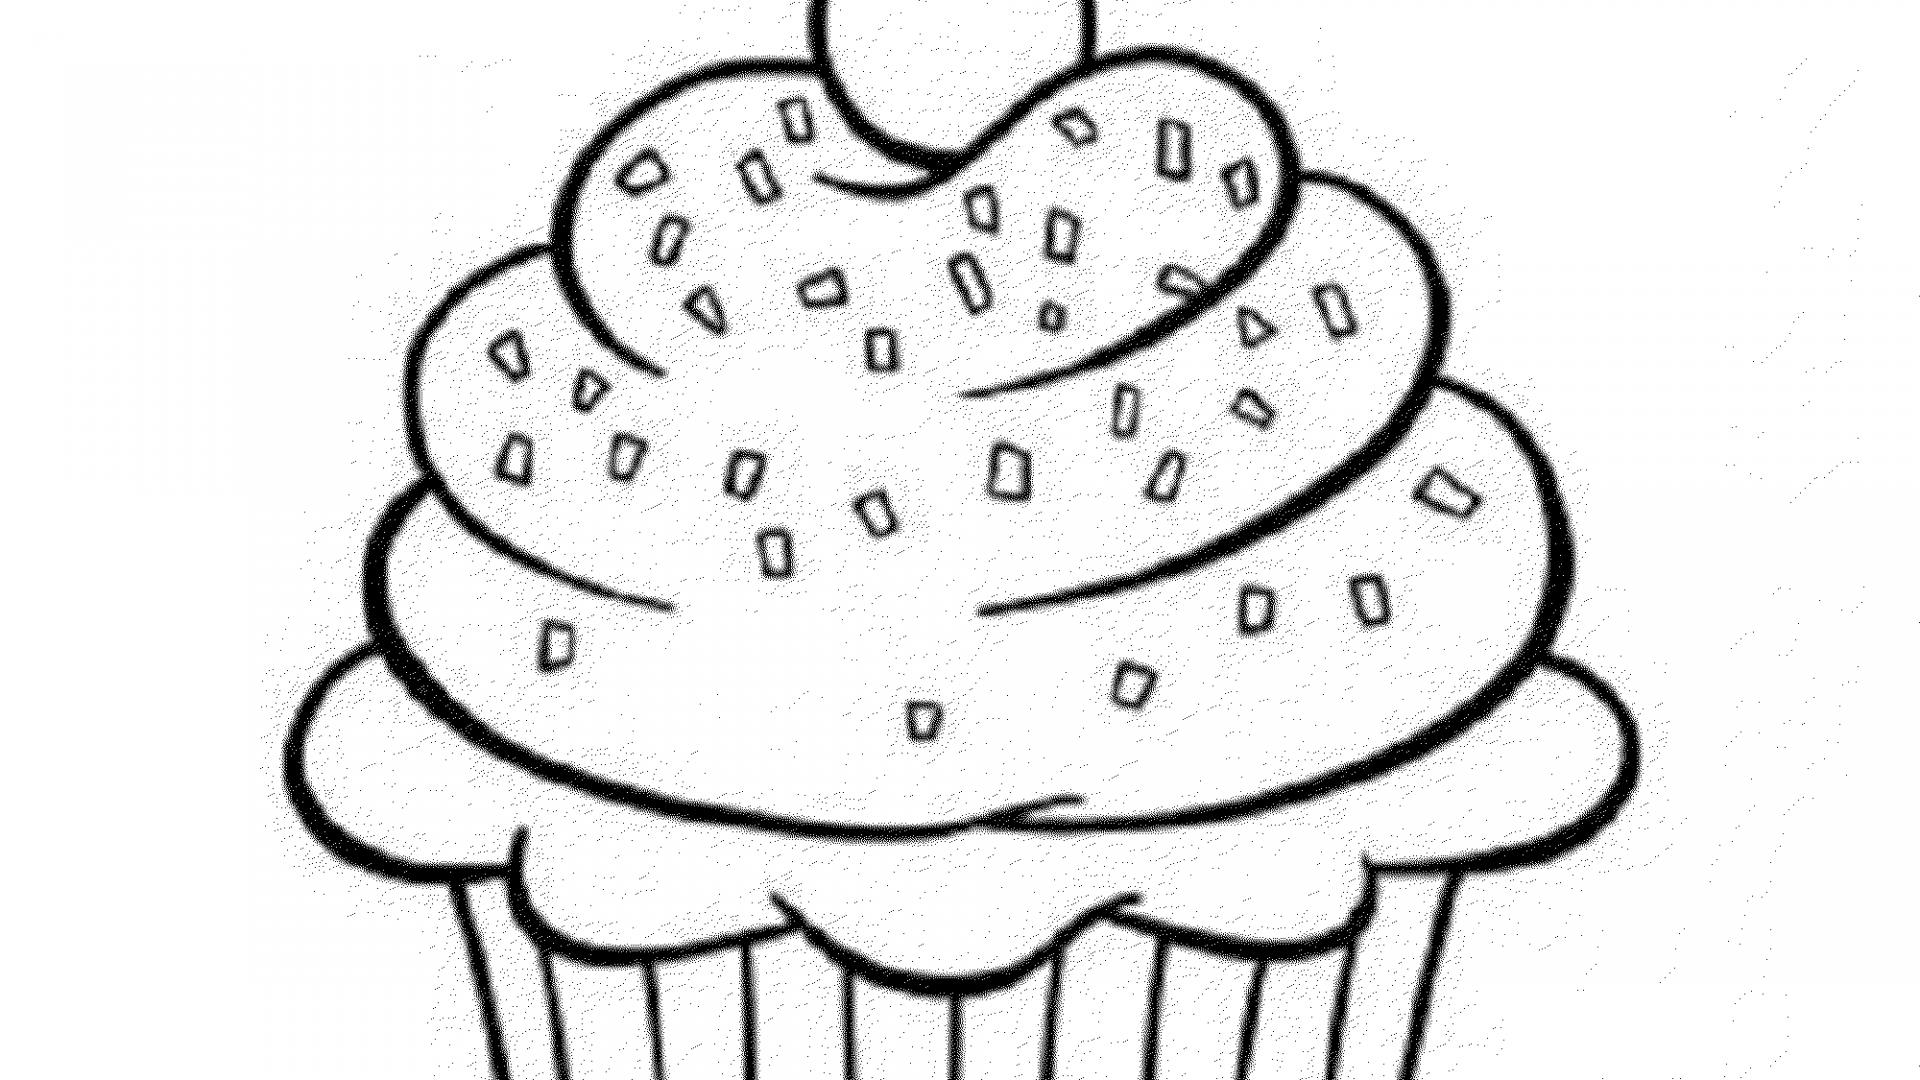 birthday cupcake coloring page ; cupcake-coloring-pages-color-food-1920x1080